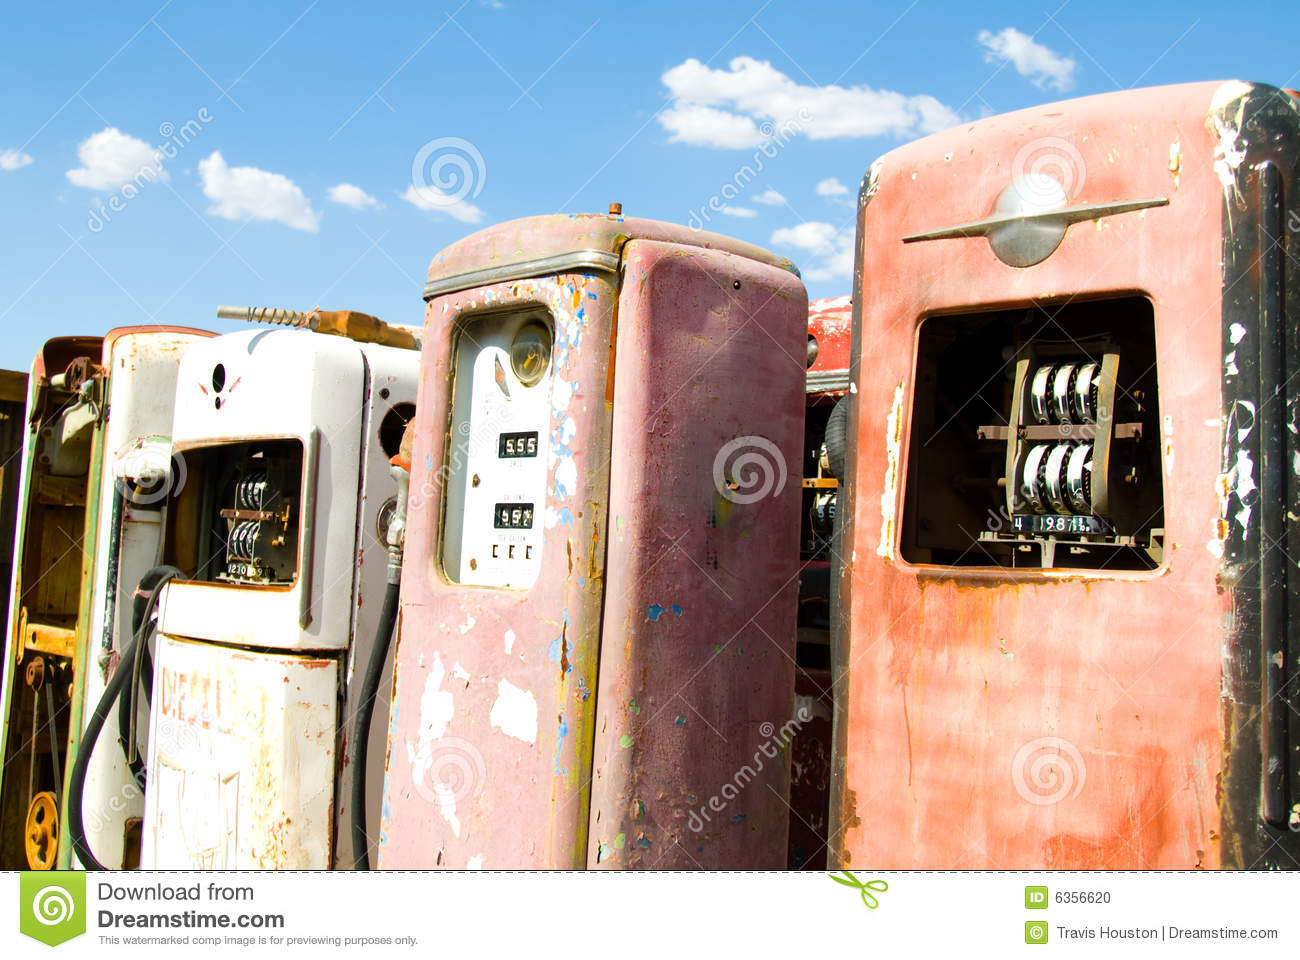 Vintage Rusted Gas Pumps